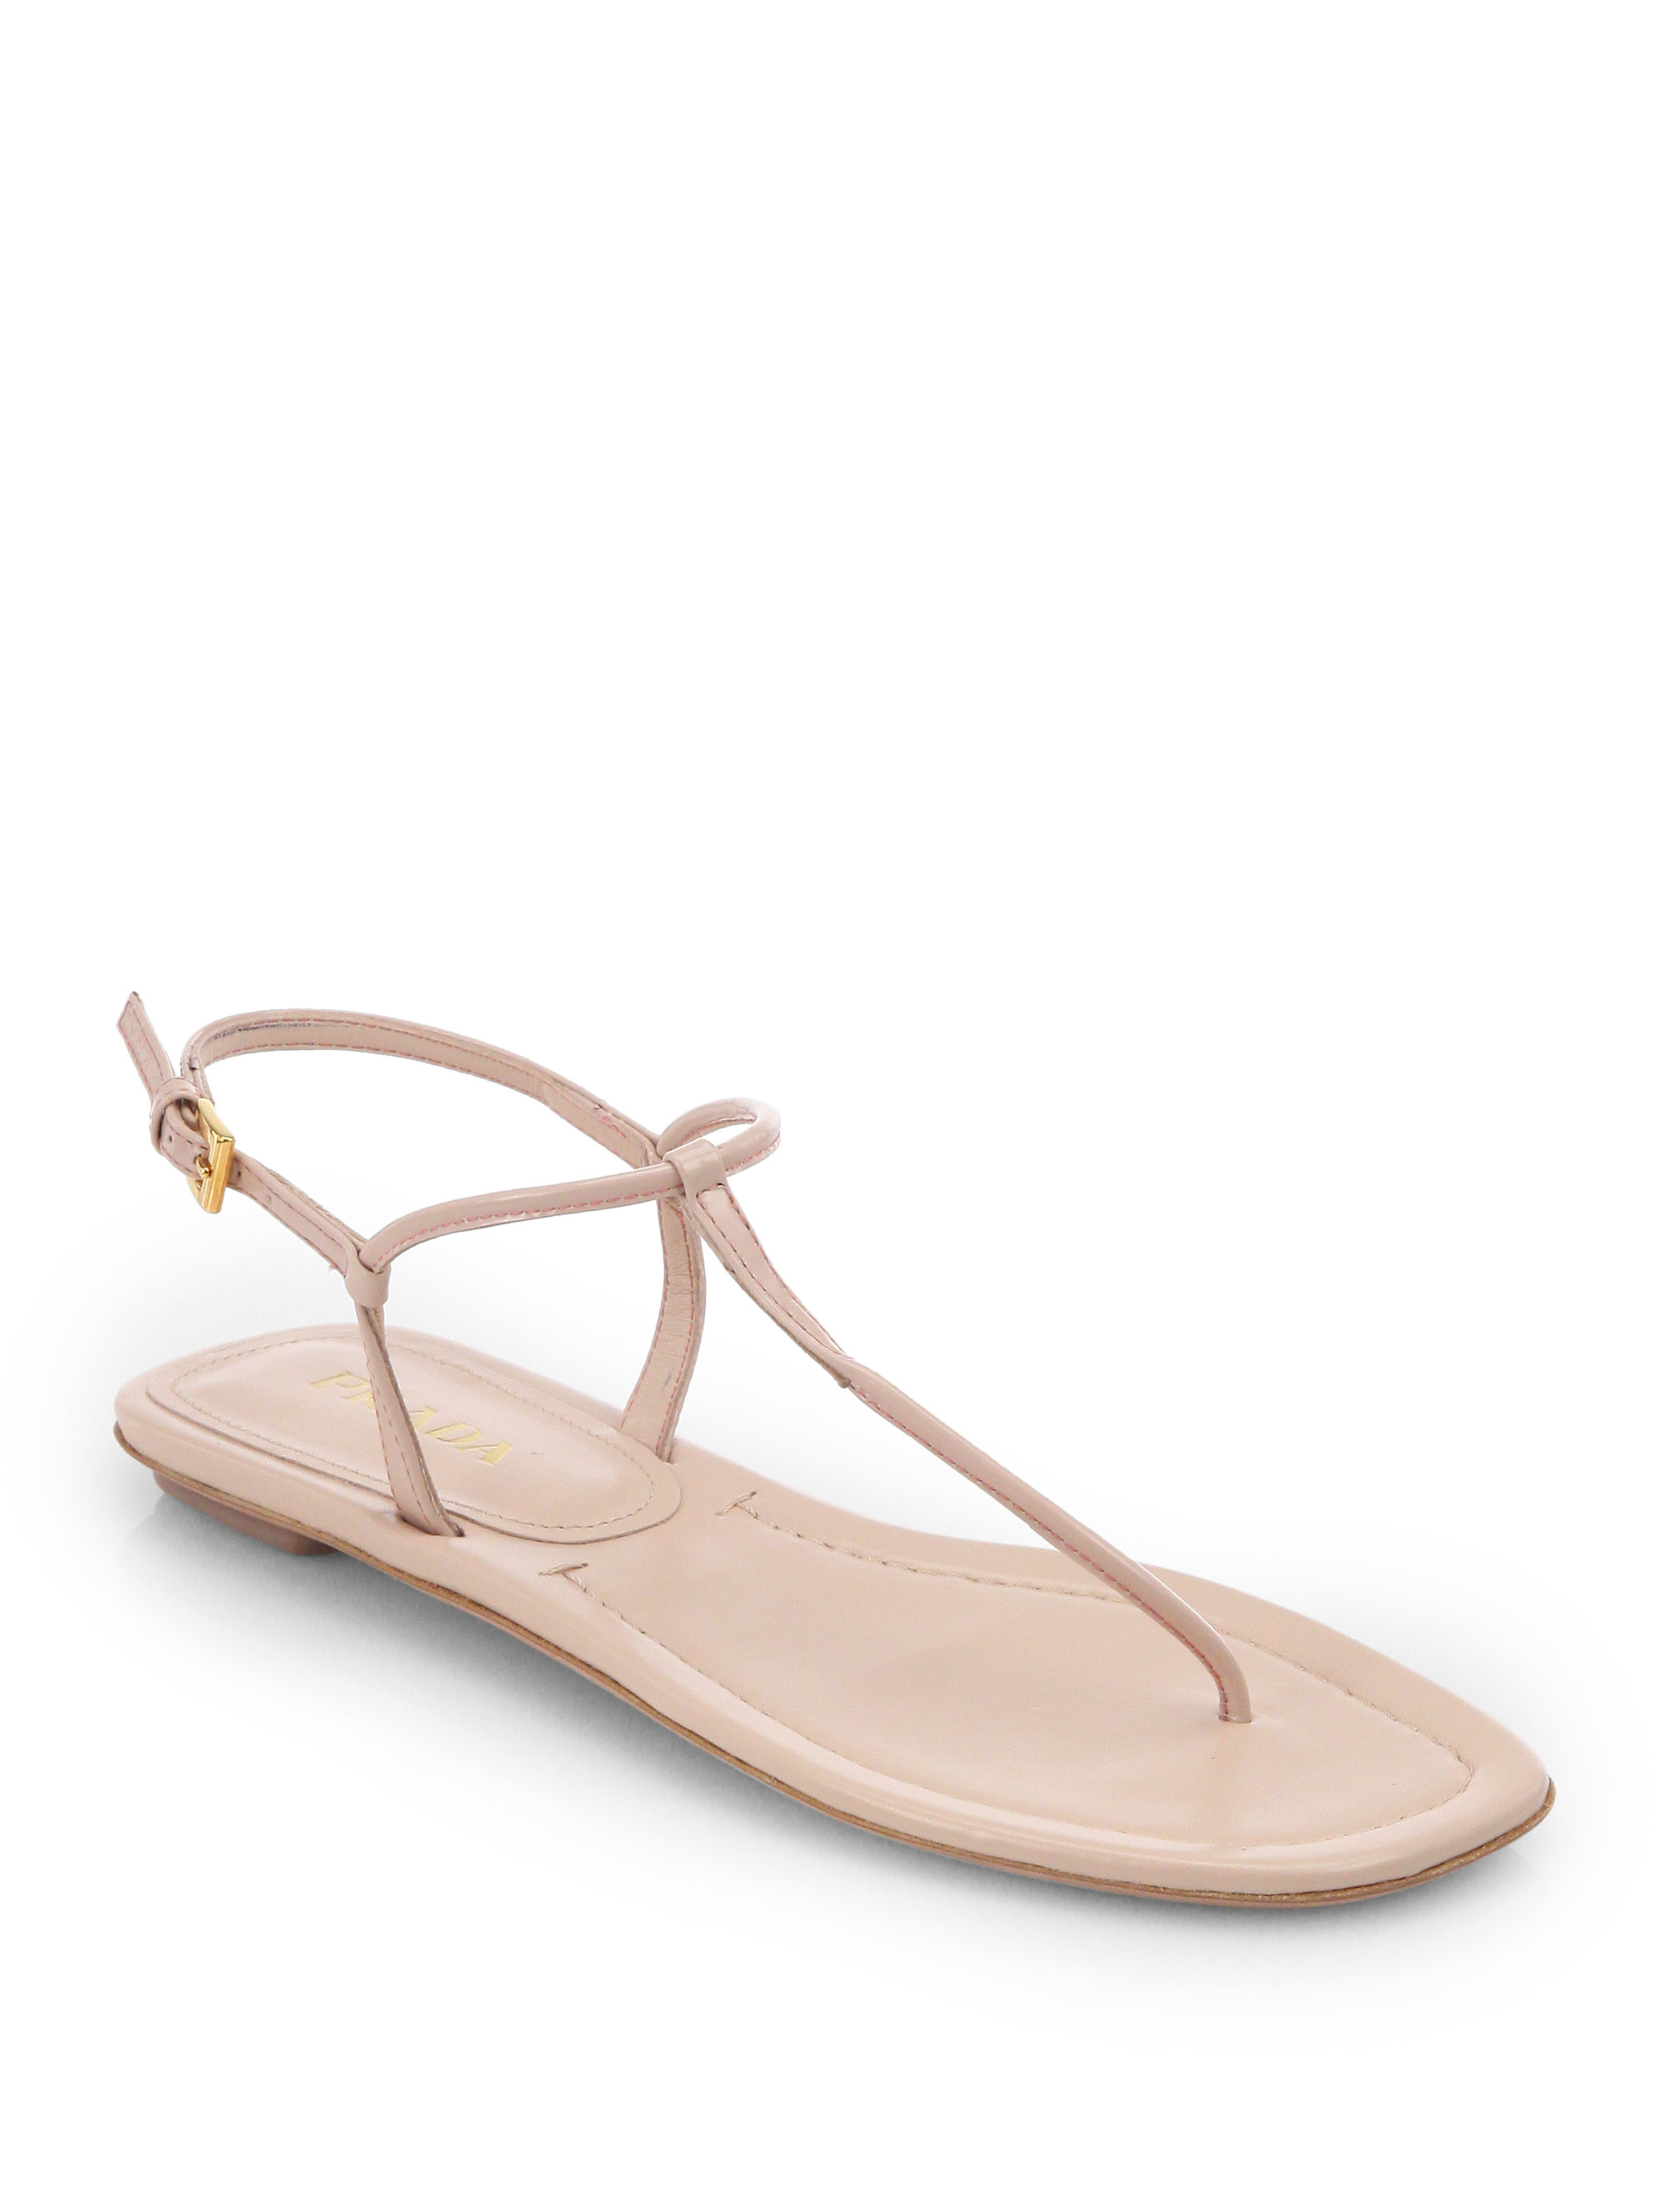 Lyst - Prada Patent Leather Thong Sandals in Pink cb066b532